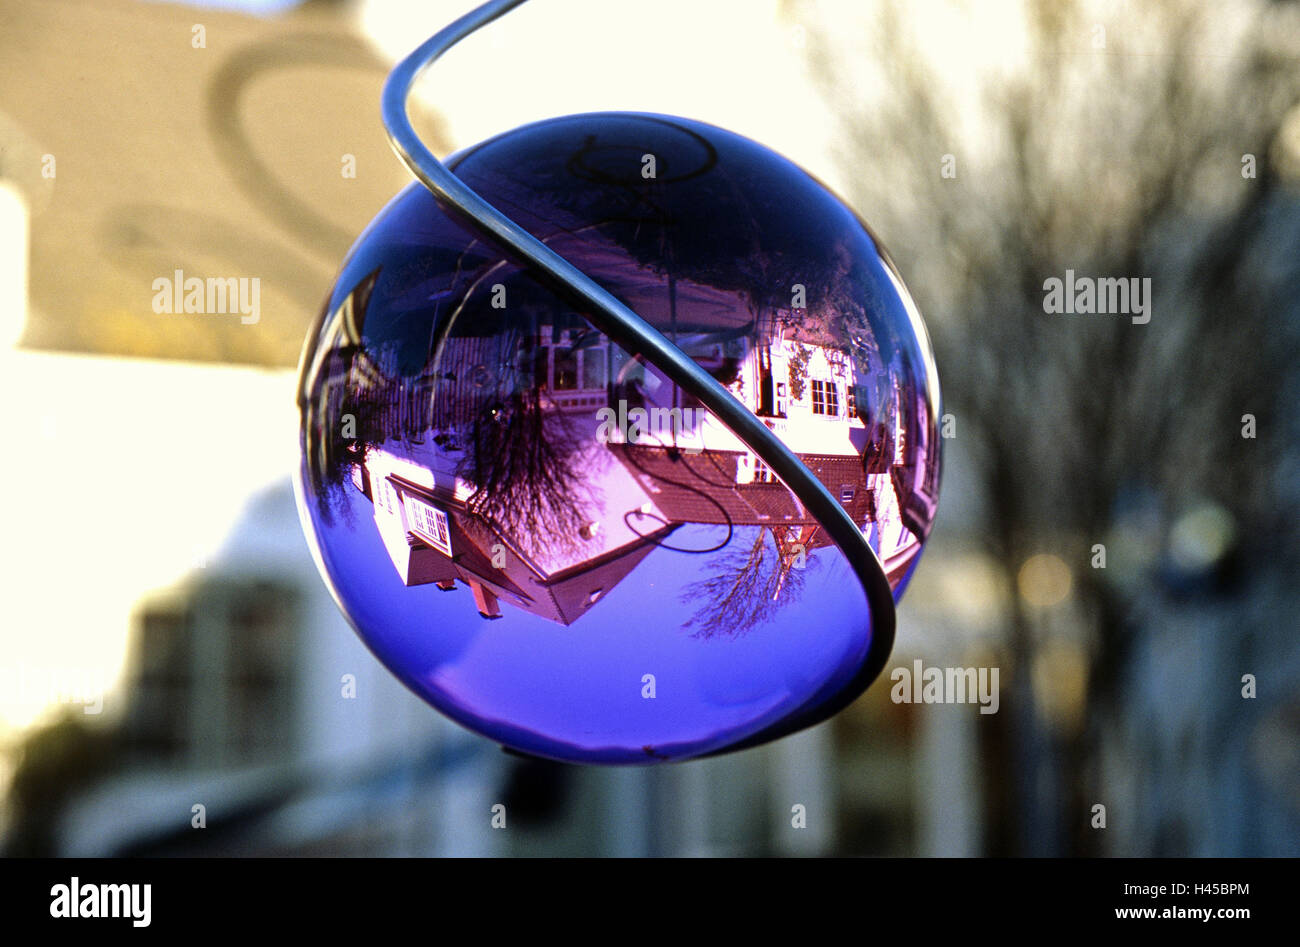 Garden, wind chime, spiral, detail, sphere, reflection, residential house, Stock Photo